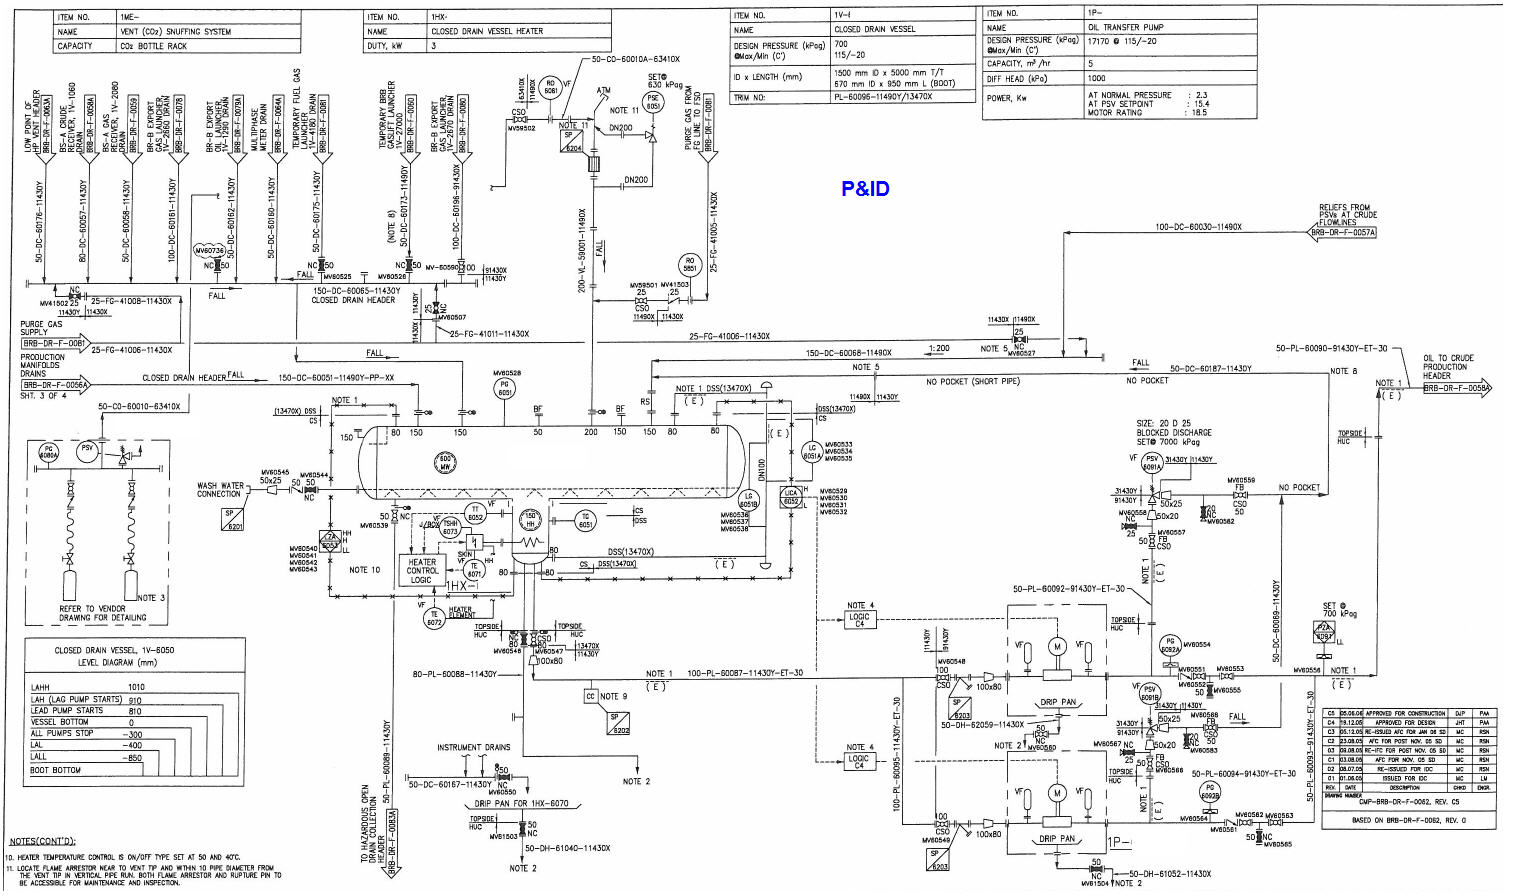 piping and instrumentation diagram valve symbo